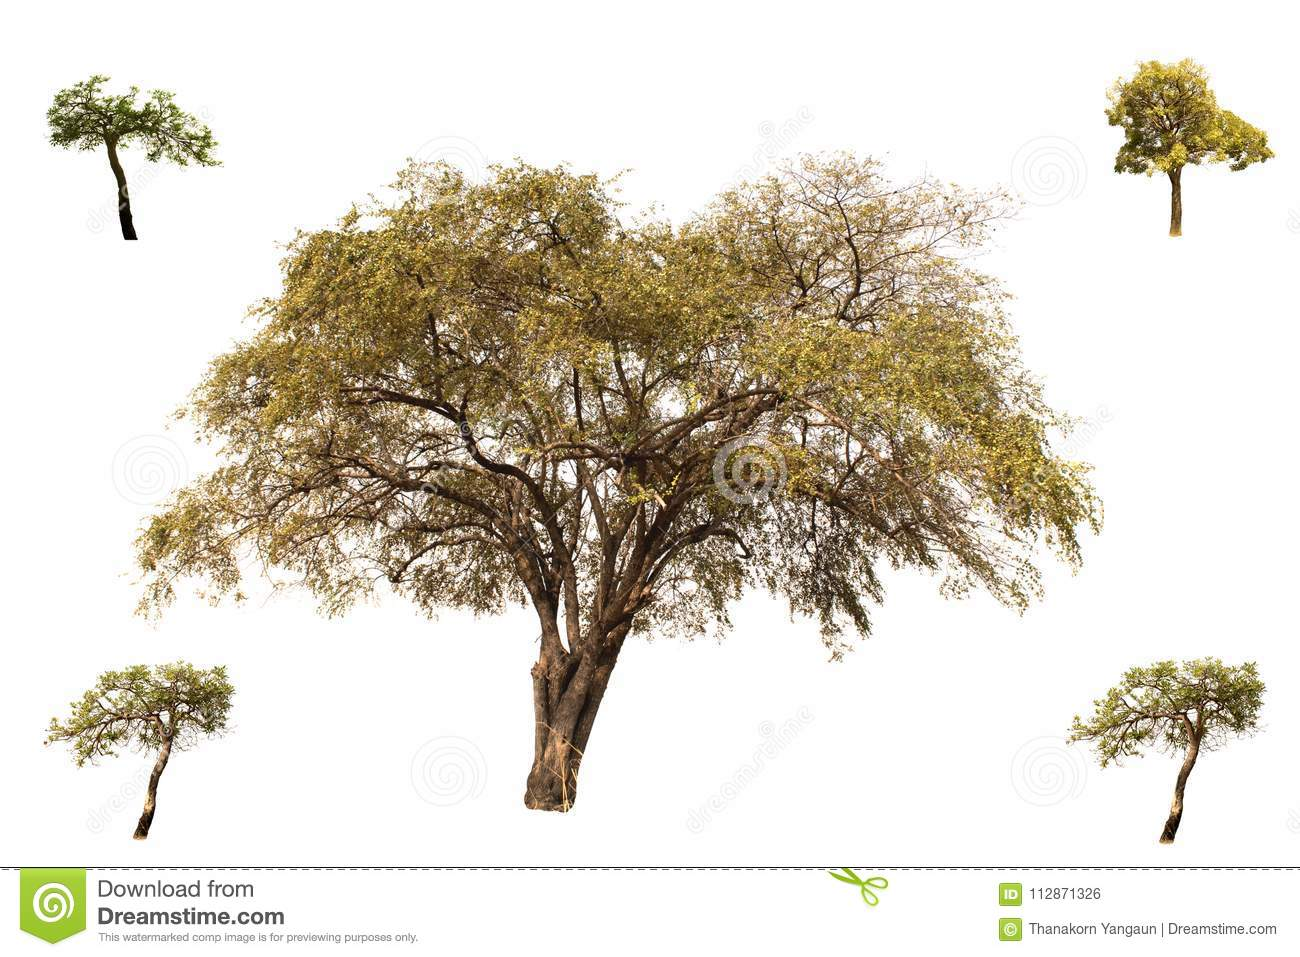 Collection of trees, Indian Jujube and little Tabebuia Aurea trees isolated on white background, look fresh and beautiful.